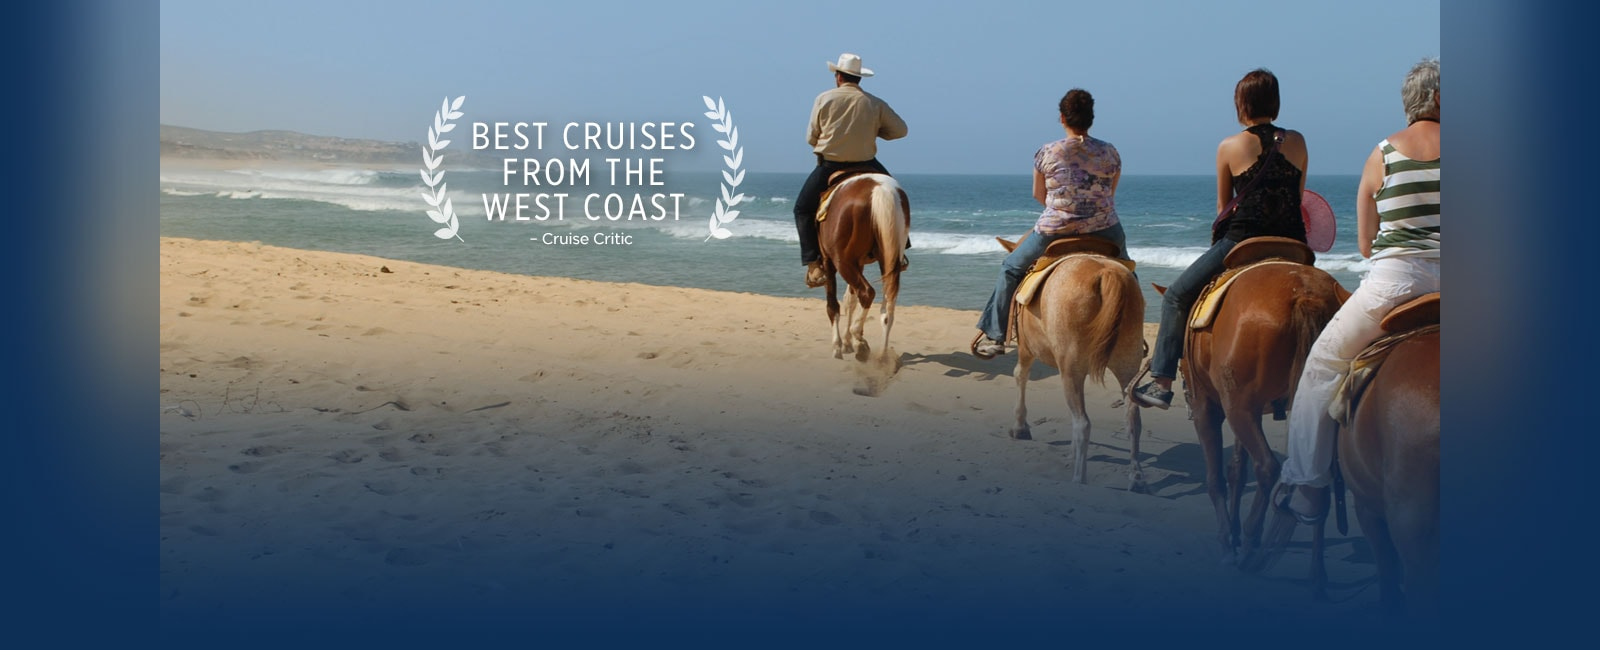 Best Cruises from the West Coast - cruise critic award. People riding horses on the beach